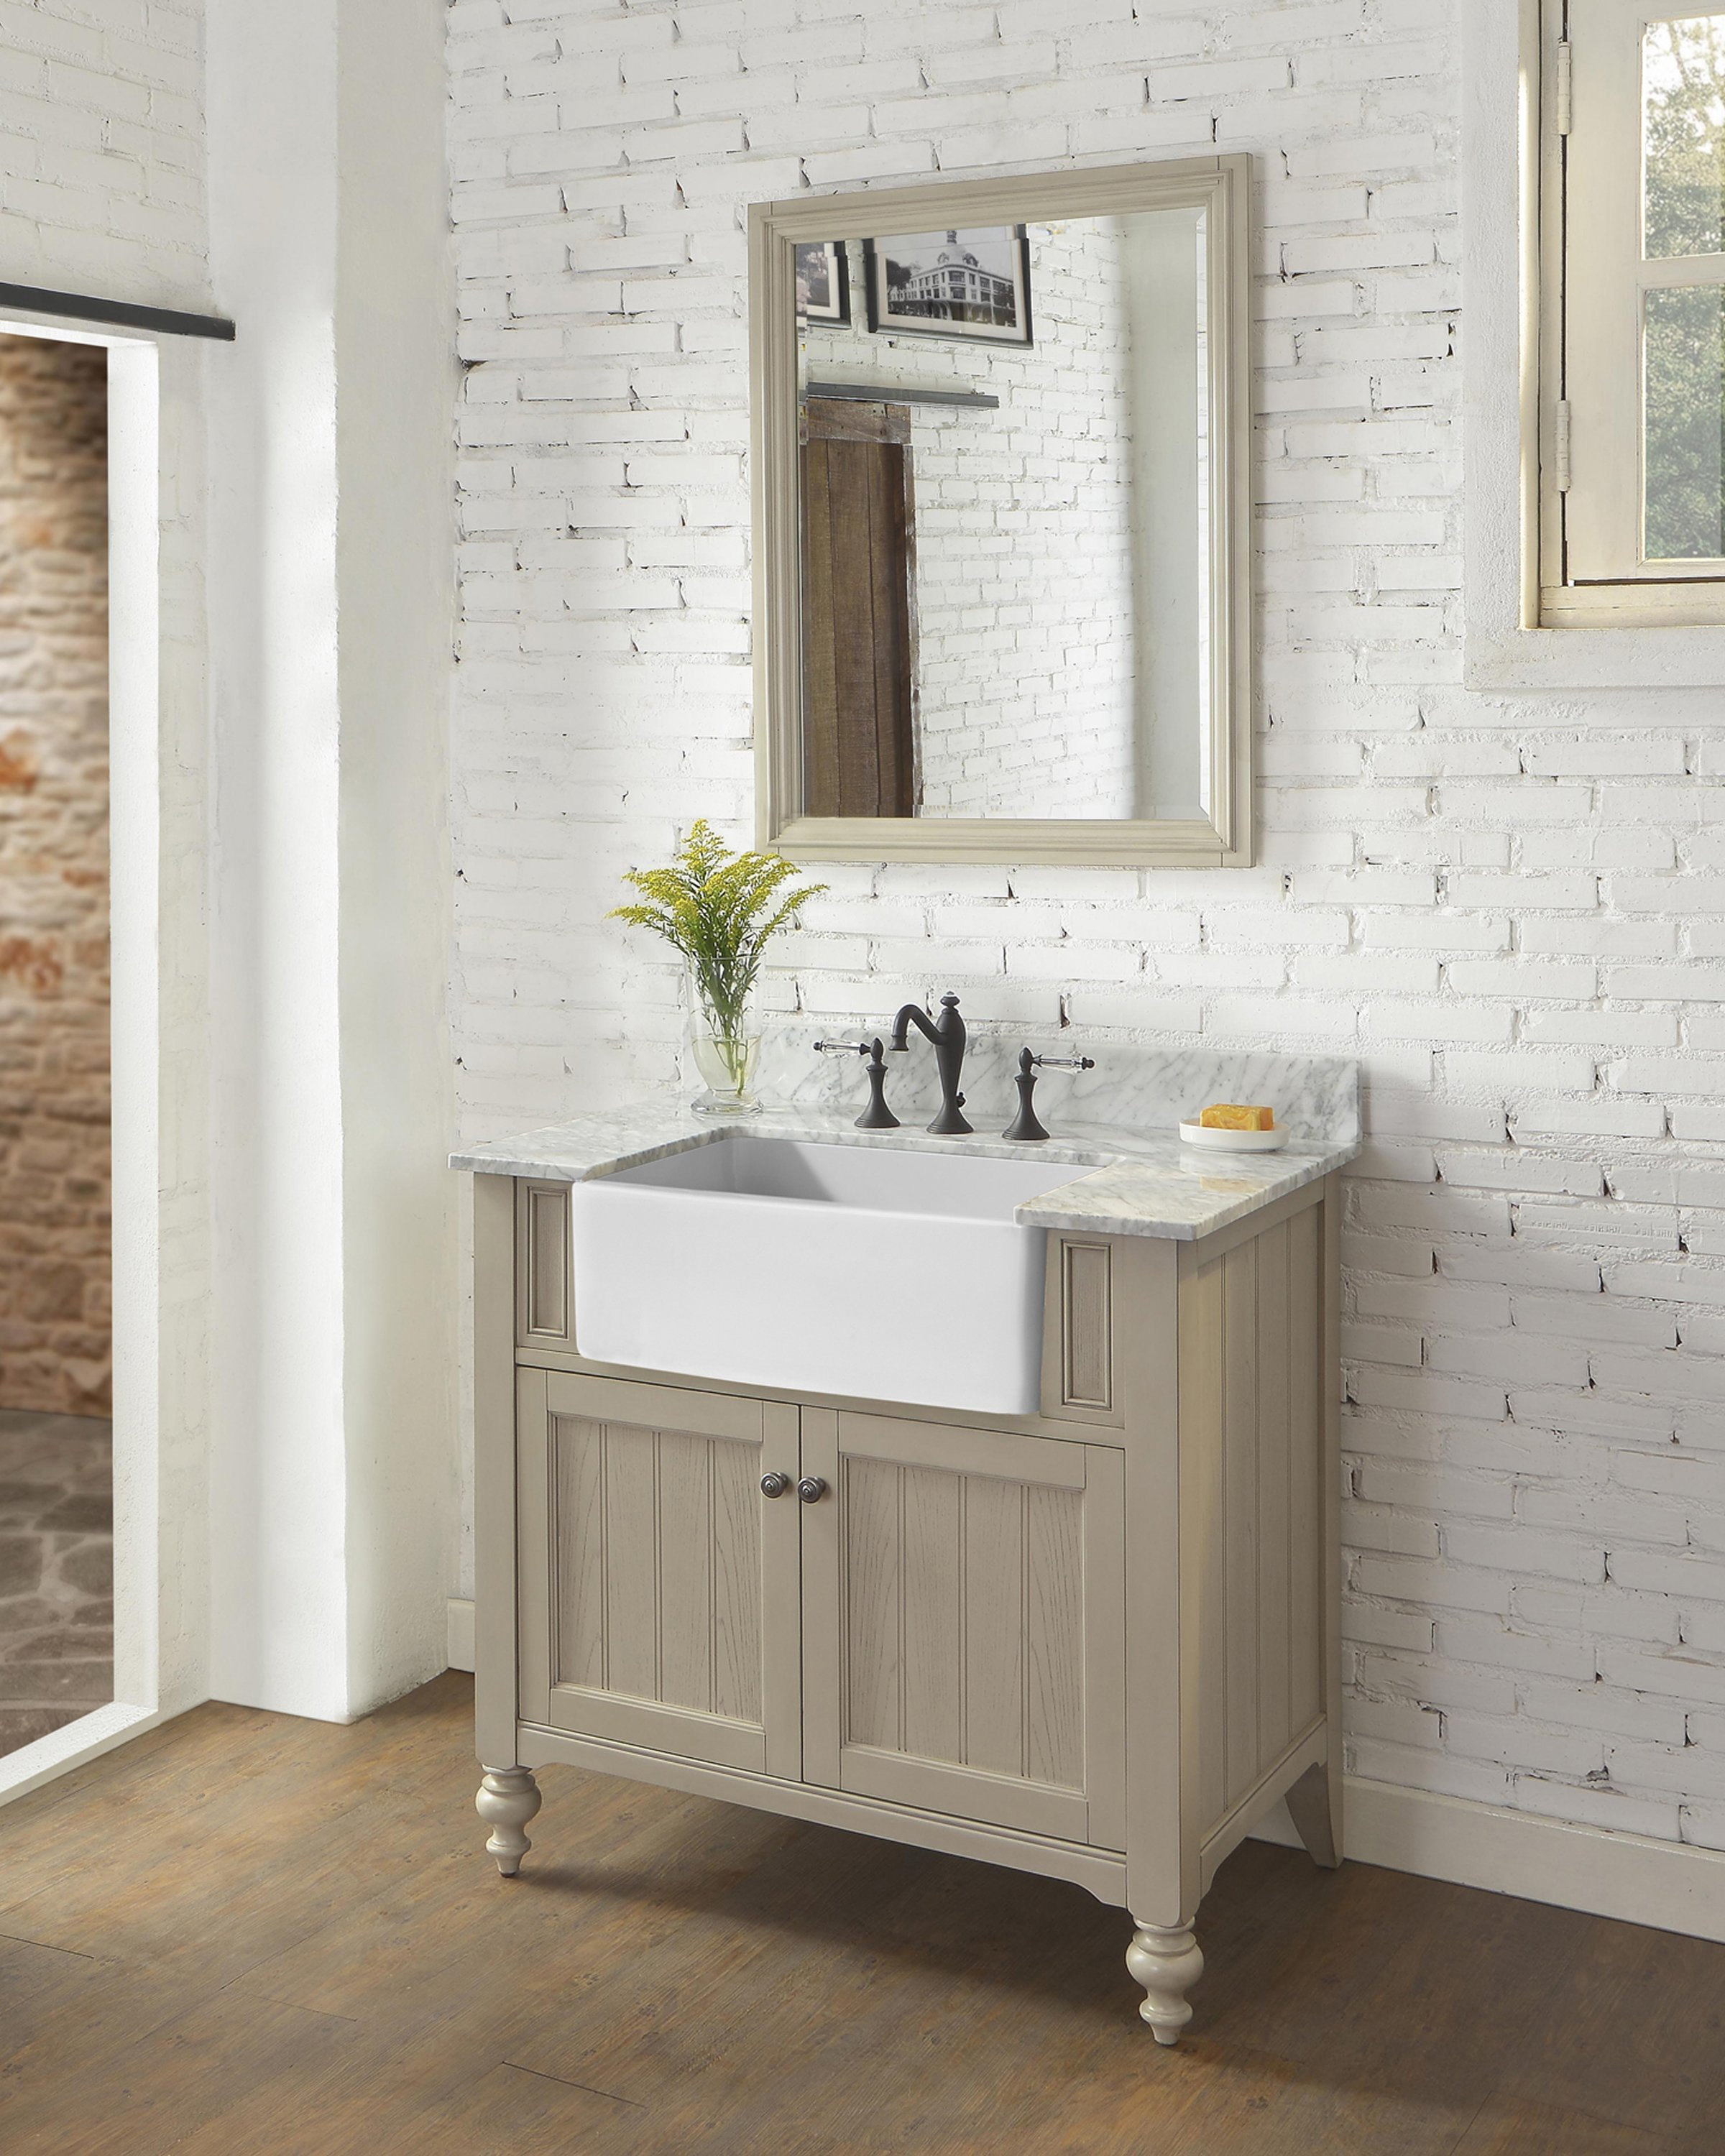 Kitchen And Bath Design Center And Remodeling: Home Remodeling Pittsburgh, PA